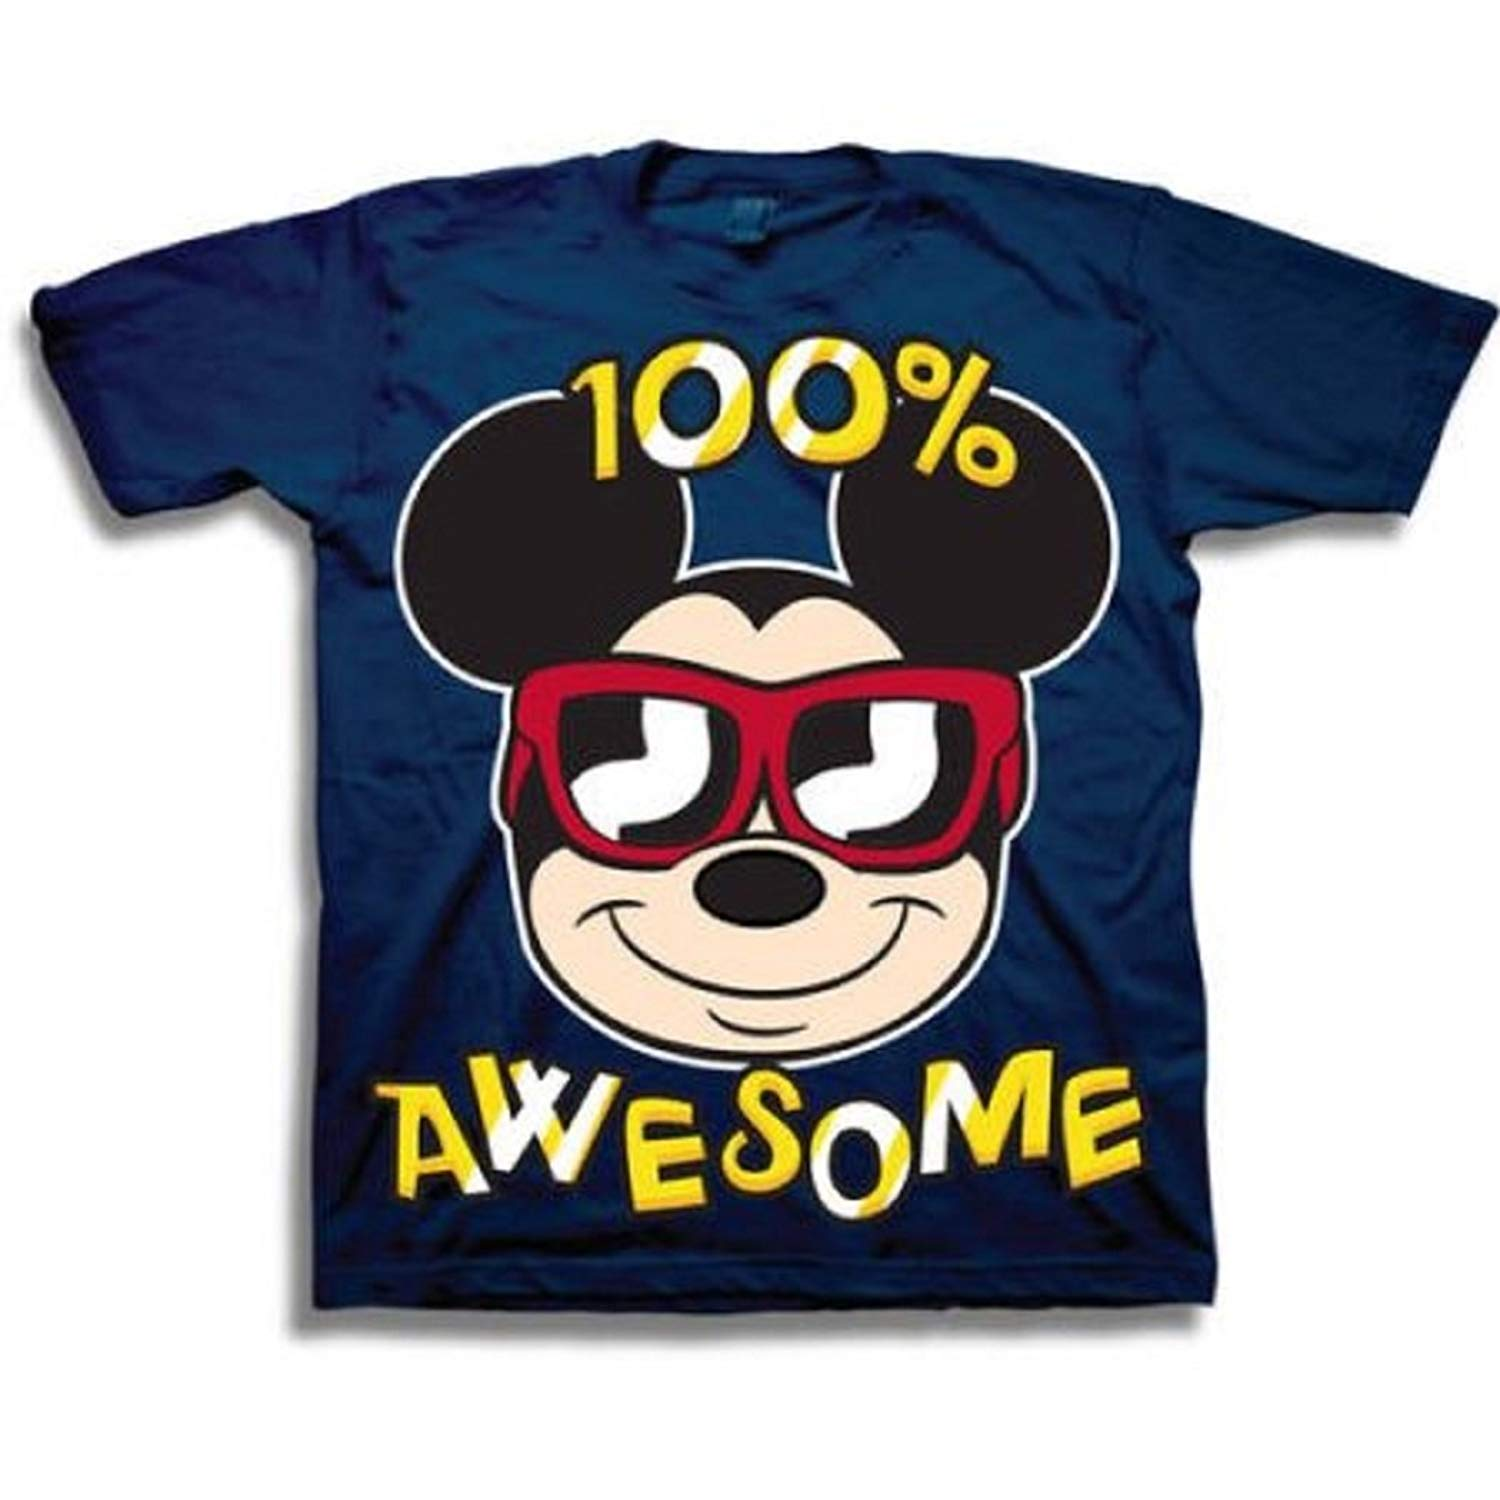 Mickey Mouse Toddler Little Boys 100% Awesome T-Shirt